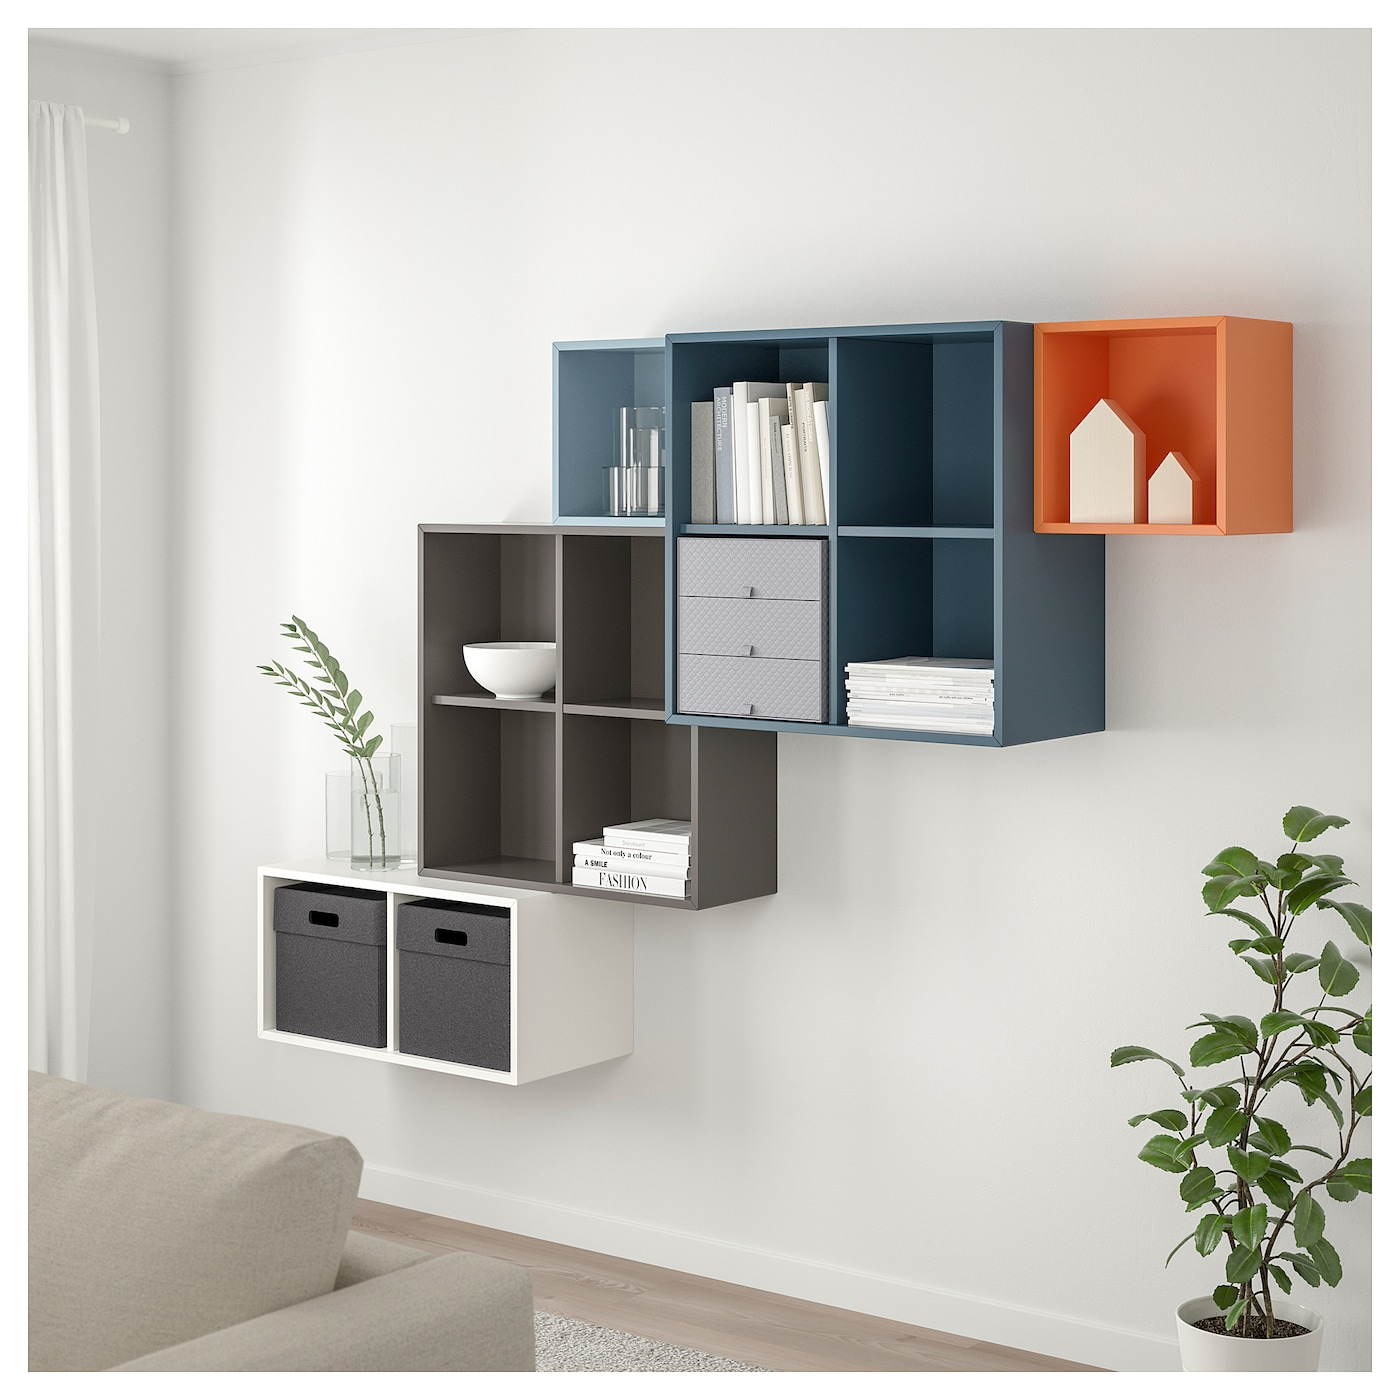 eket wall mounted cabinet combination multicolour 210 x 35 x 140 cm ikea. Black Bedroom Furniture Sets. Home Design Ideas